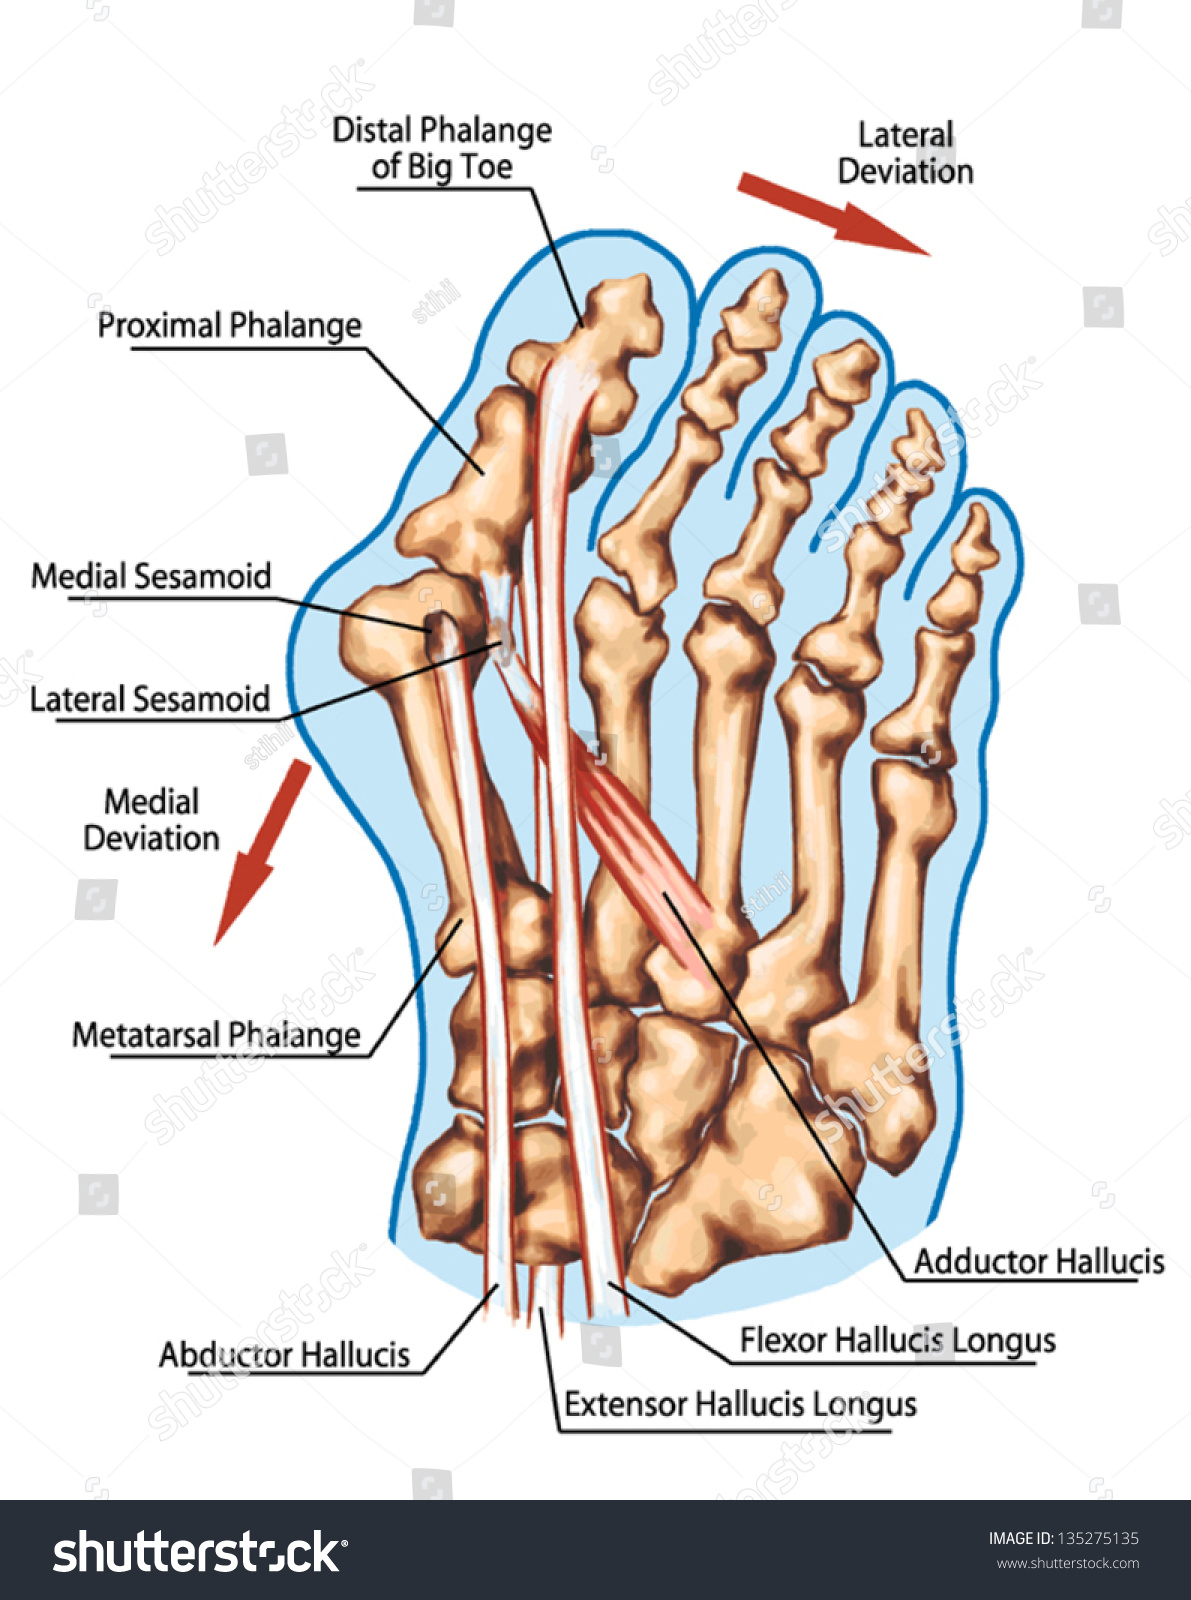 Hallux Valgus Pathogenic Mechanism Lateral Deviation Stock Vector ...